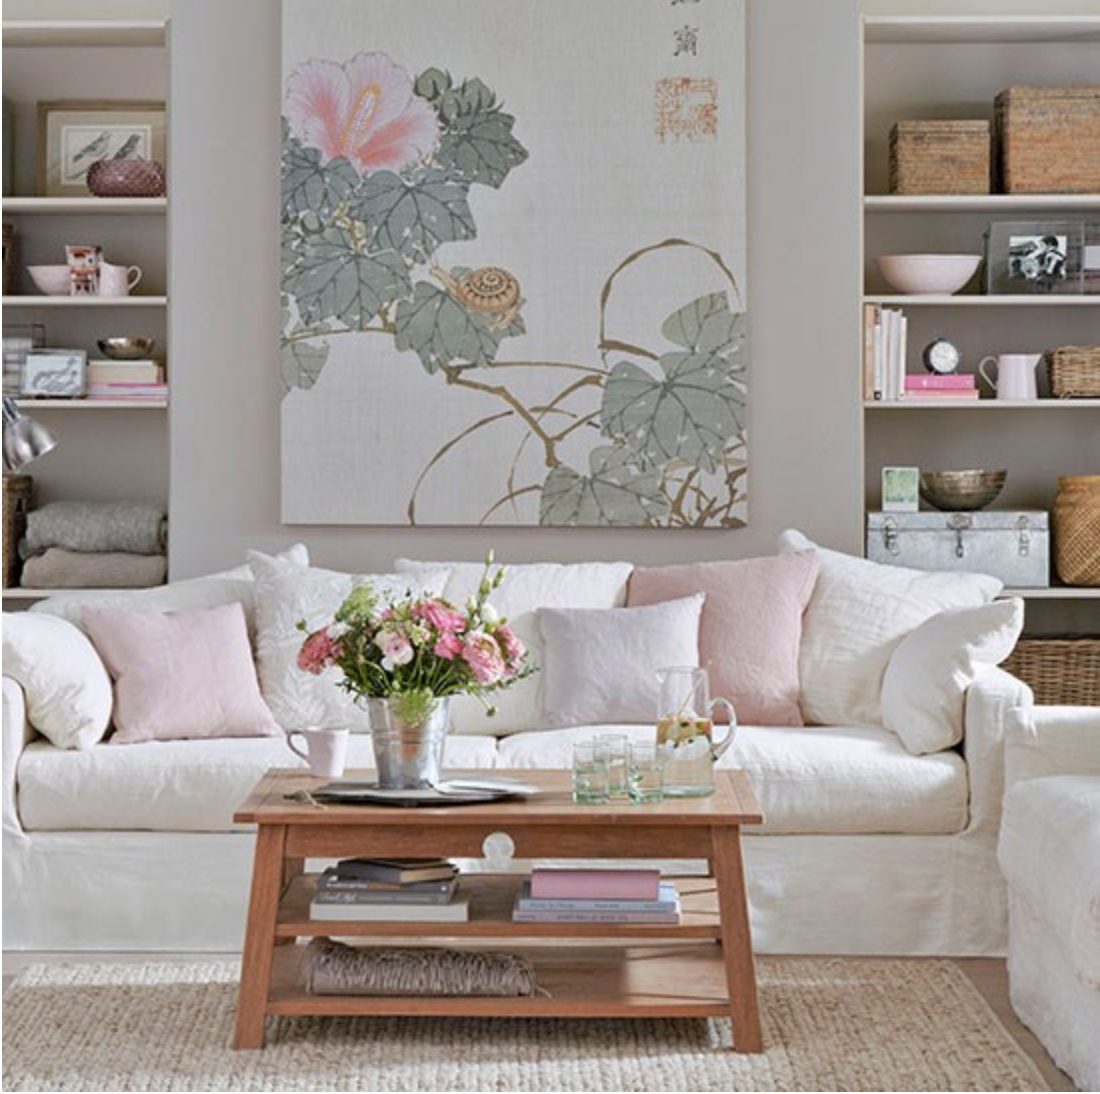 Salas pequenas romanticas e muito charmosas decorandoonline for Pinterest living room furniture